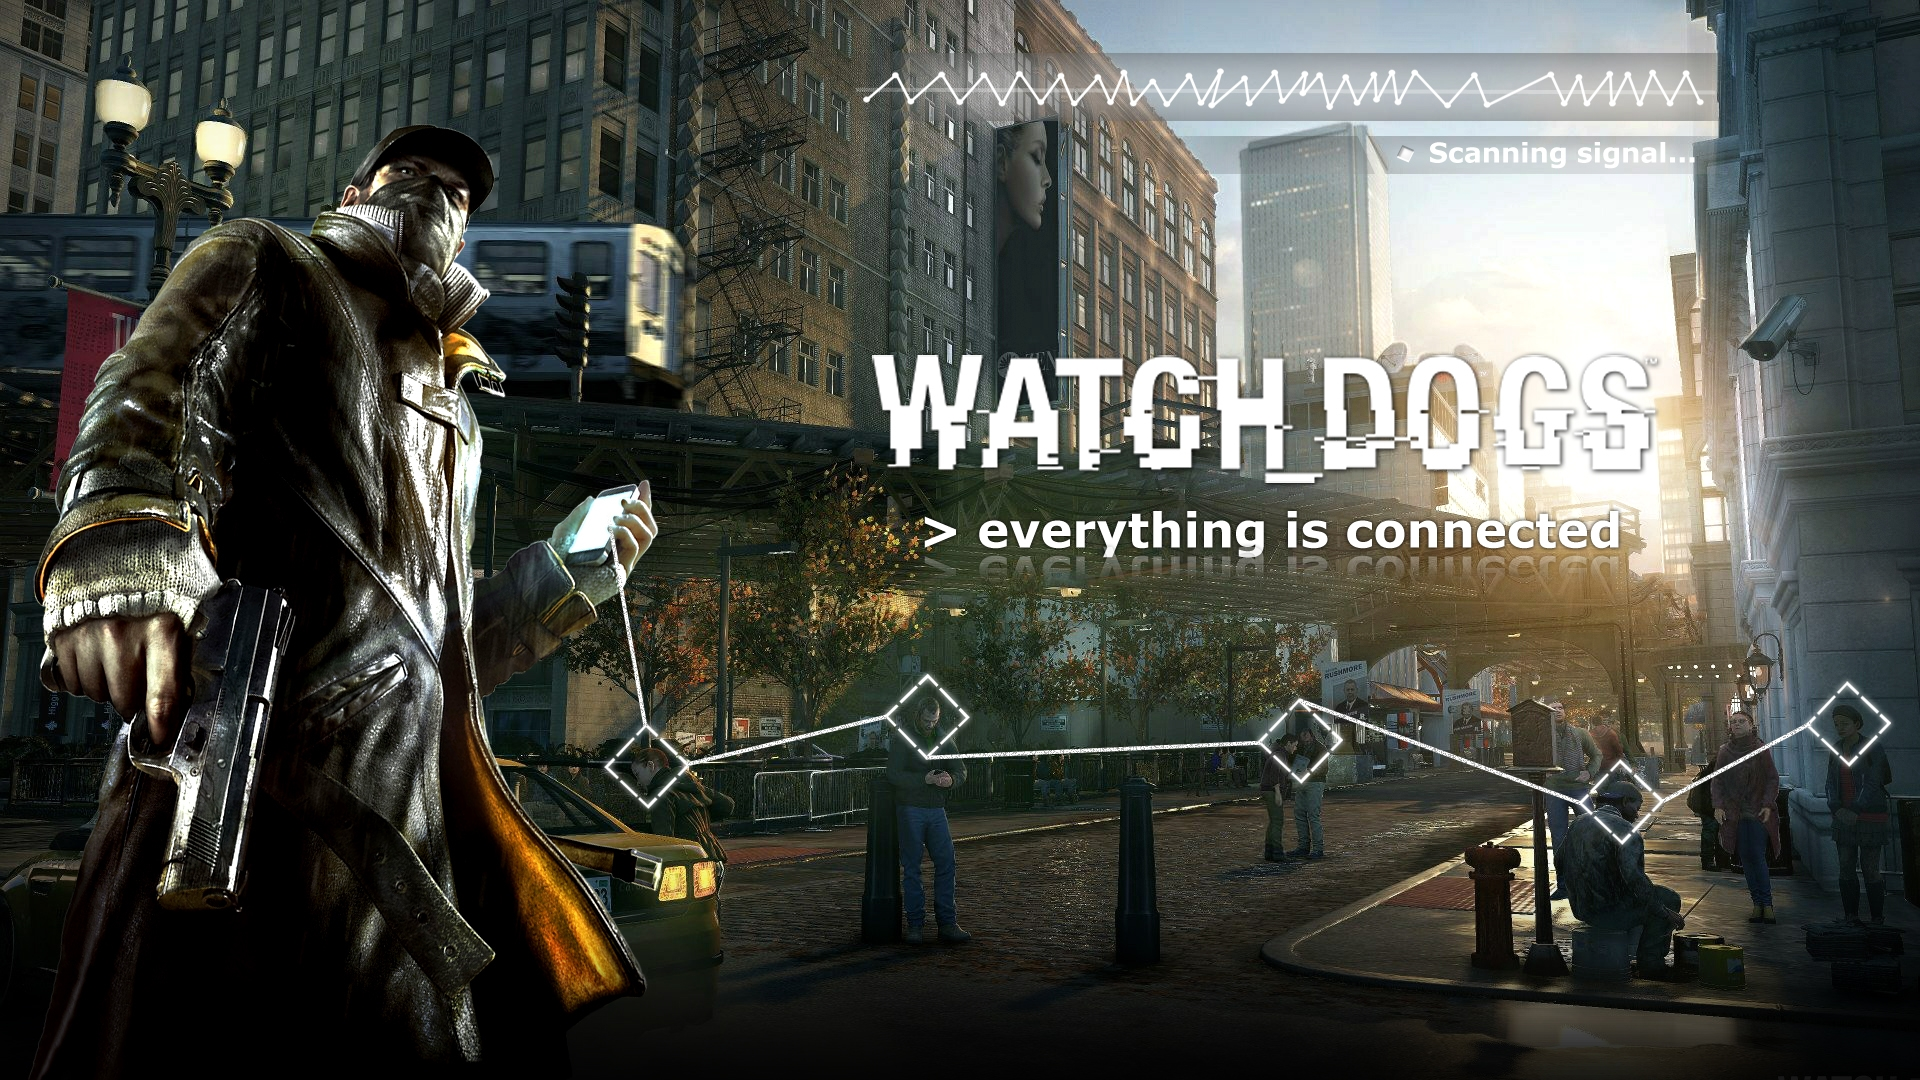 [img] watch dogs 5 24 2014 2 11 21 pm 137 [ img]